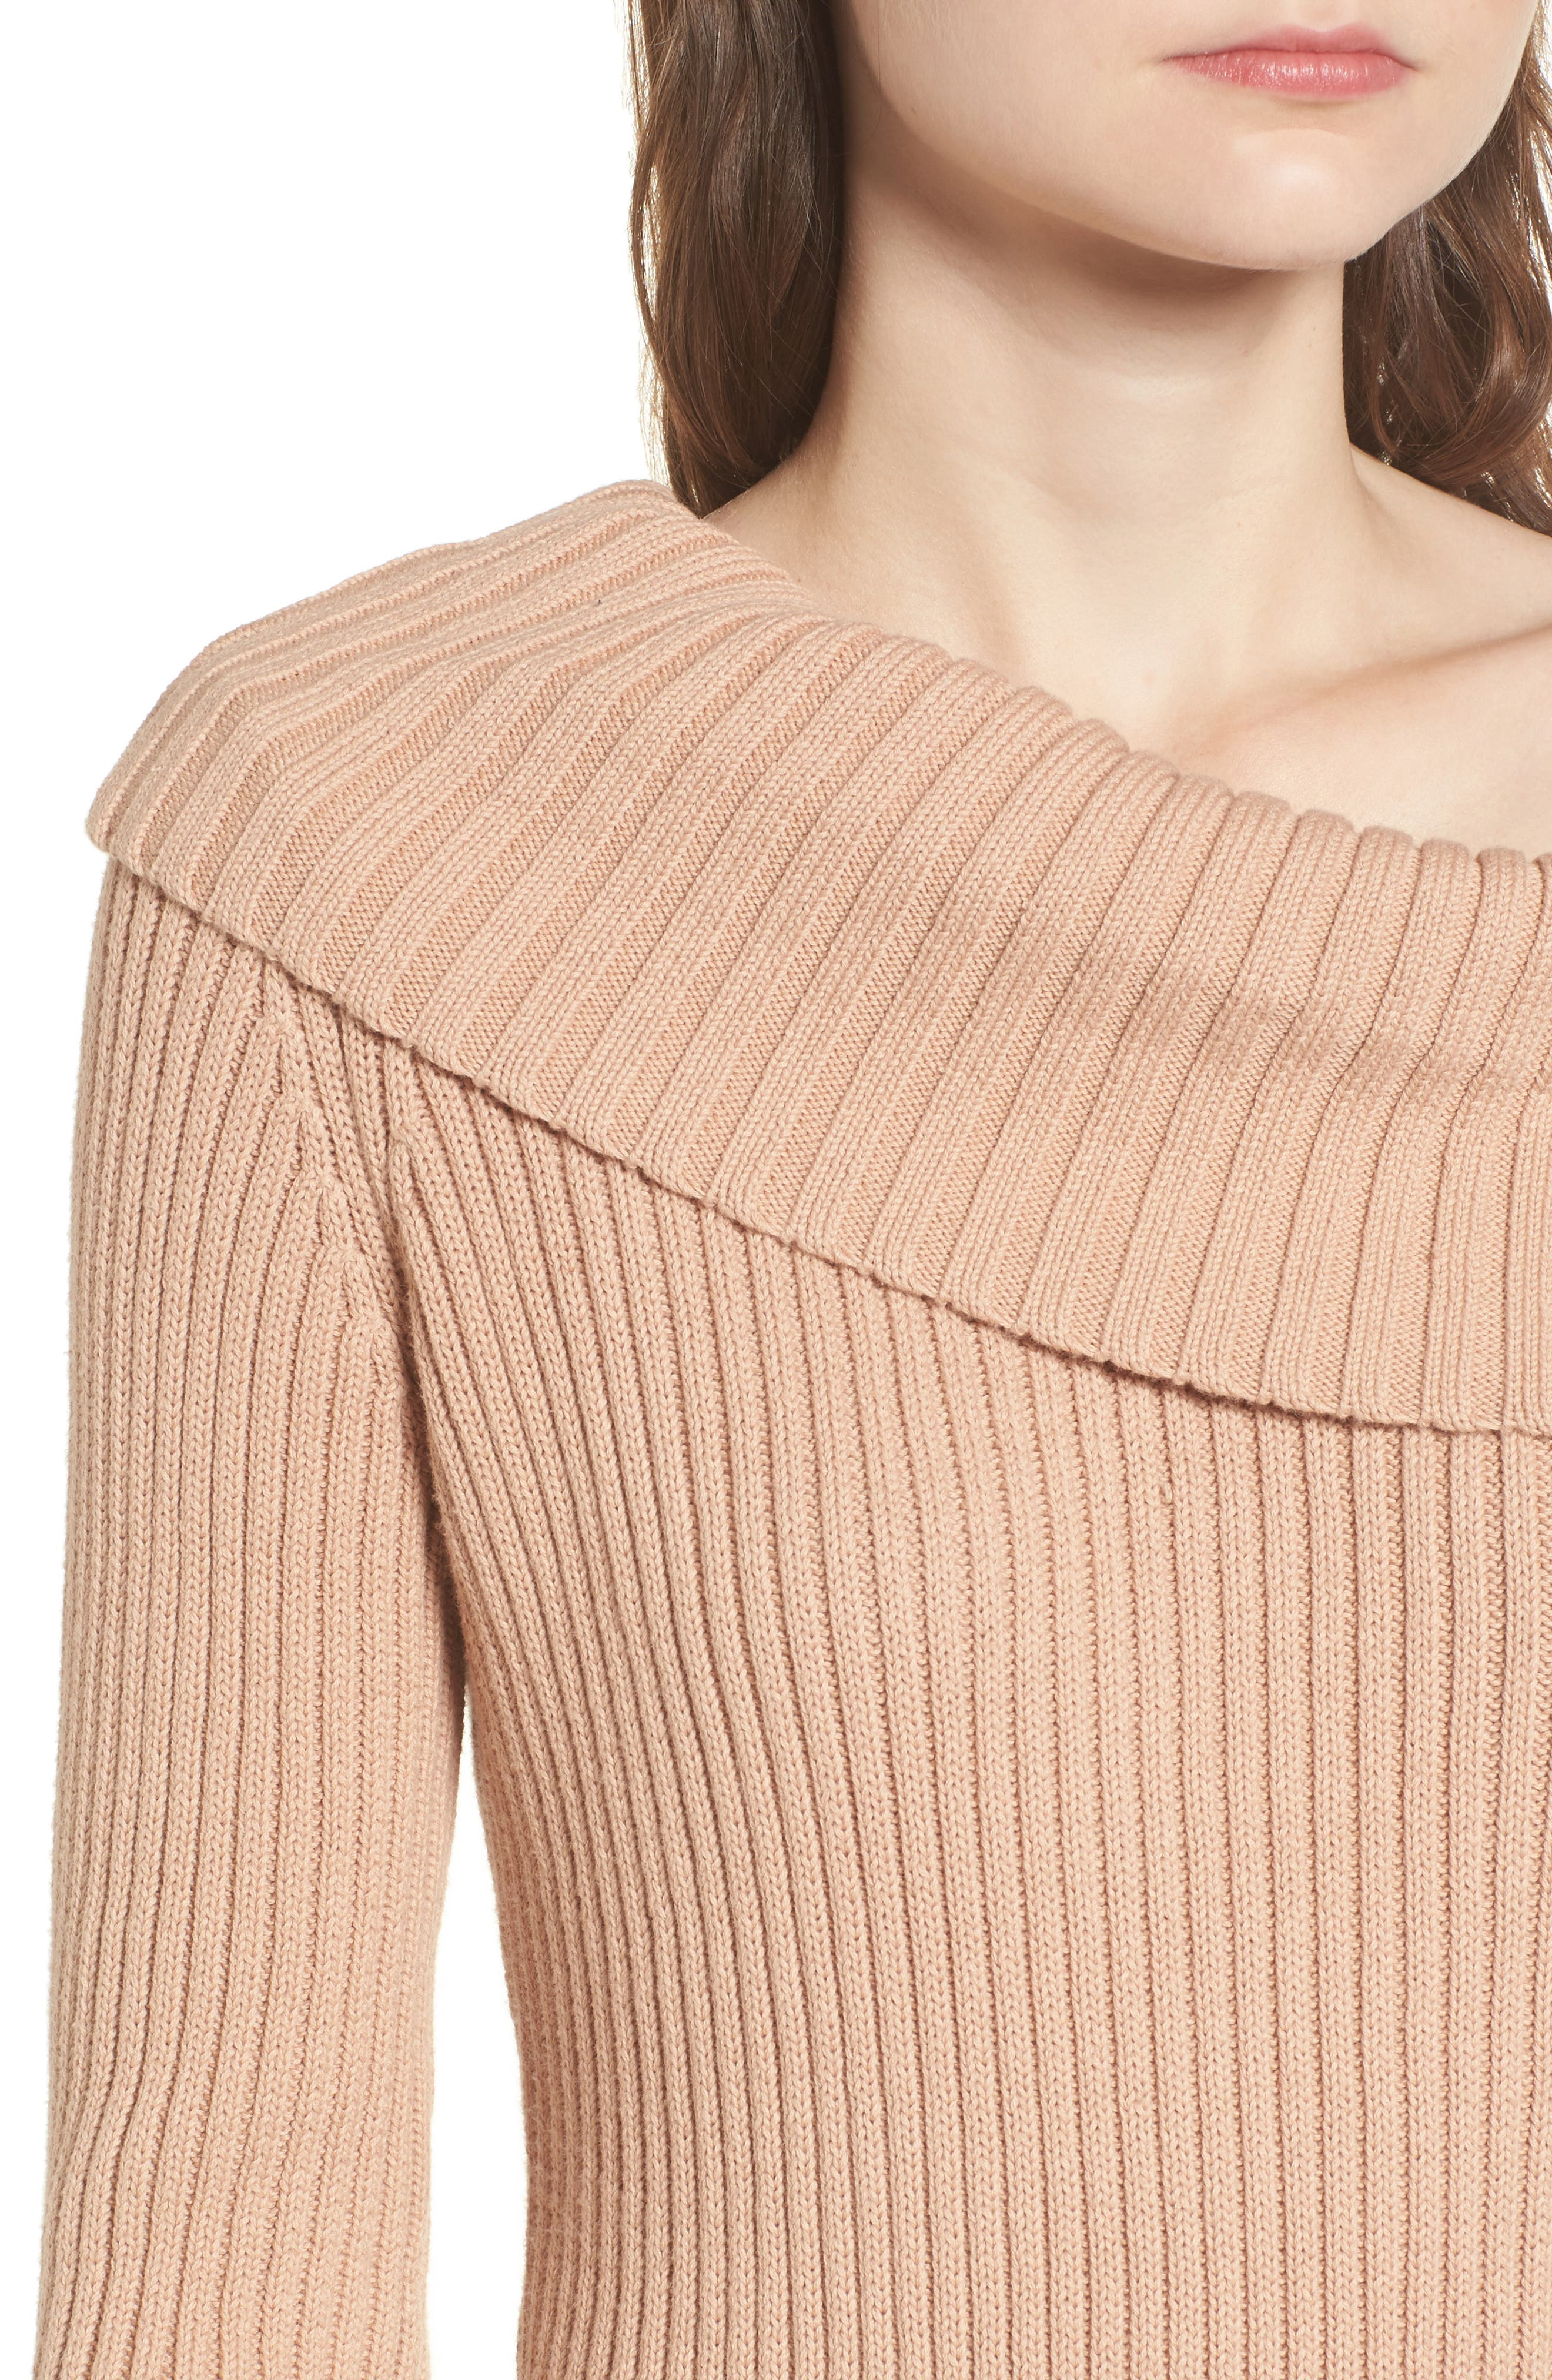 Like a Melody Off the Shoulder Dress,                             Alternate thumbnail 4, color,                             660